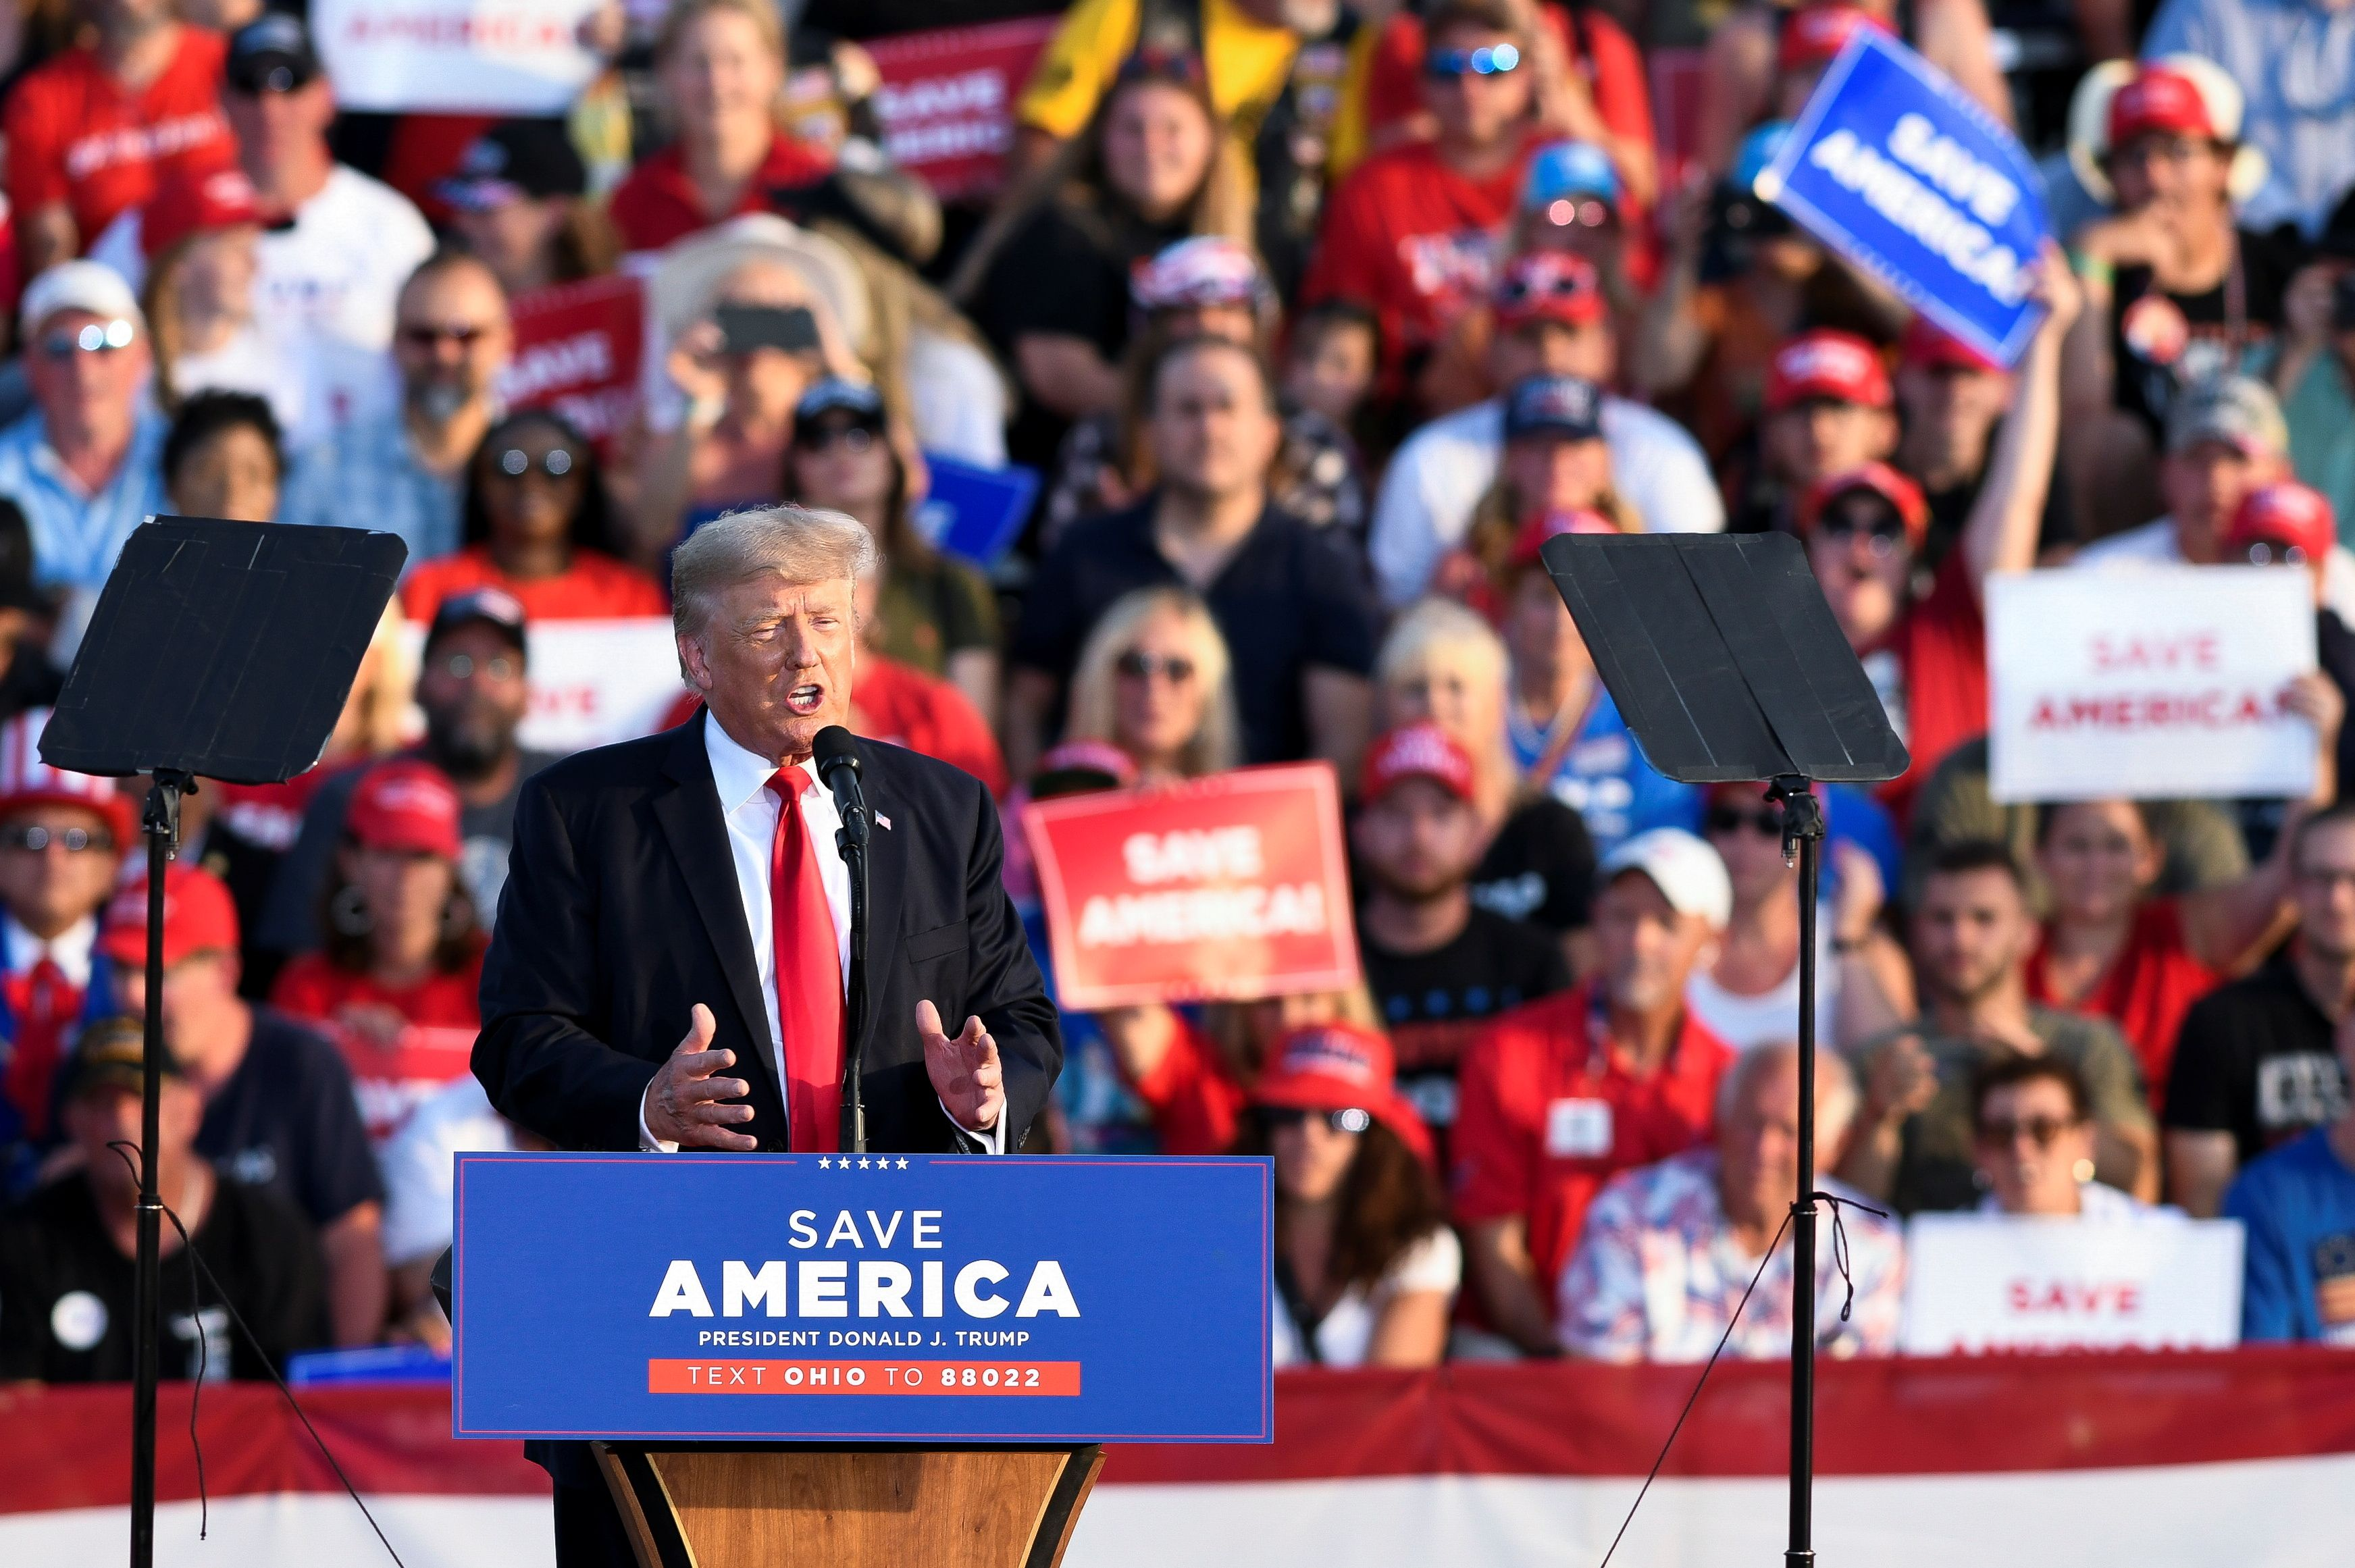 Trump knocks immigration, urges voters for Republicans in Ohio rally |  Reuters